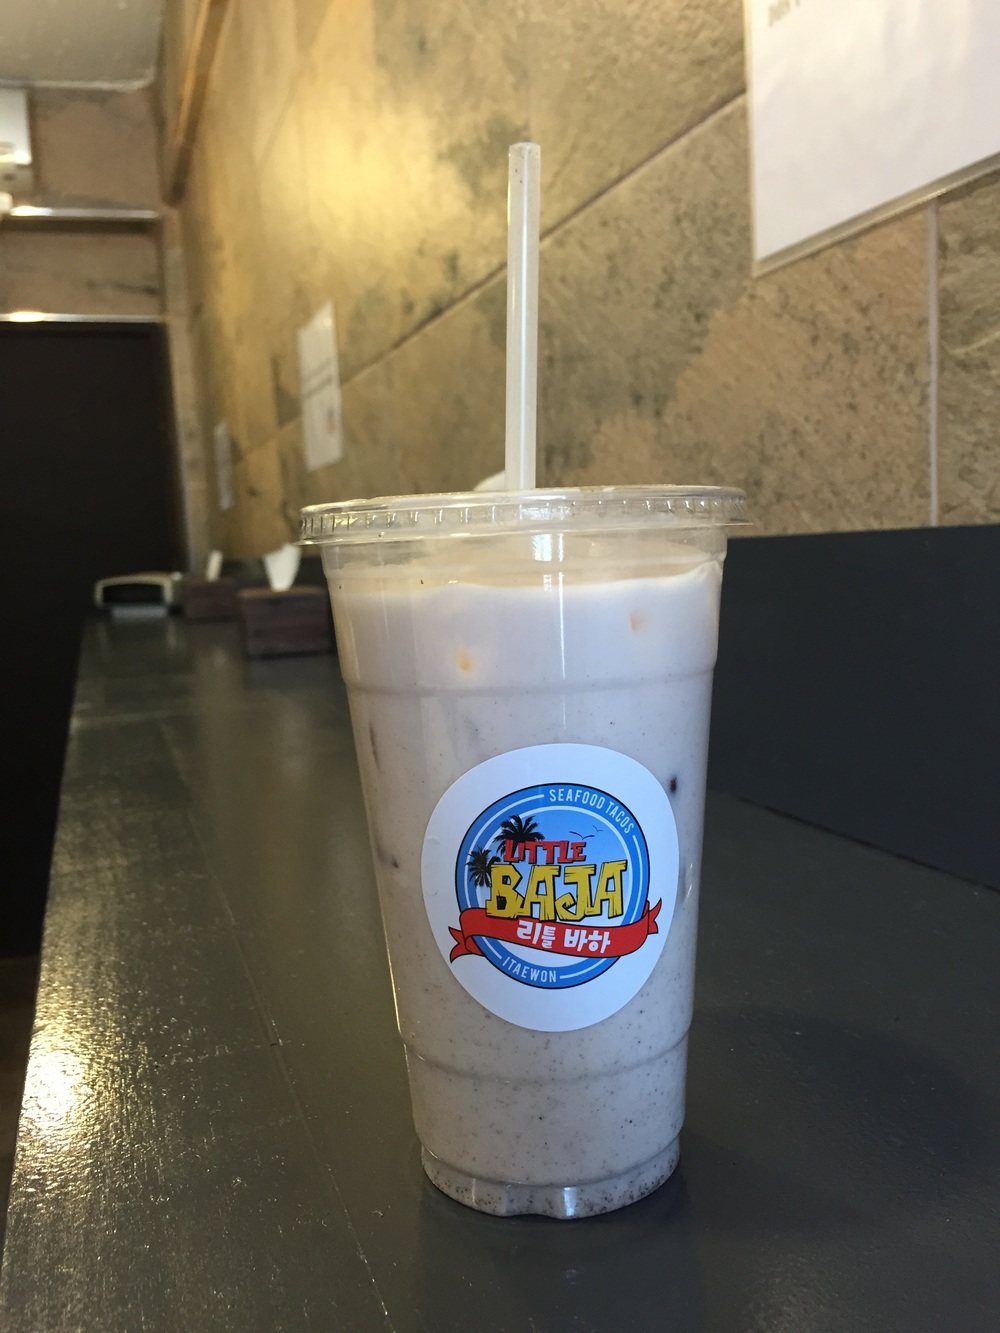 Horchata 5000won. The best horchata I've had! I even liked it better than King Taco's in LA!!! It was a bit thicker and had way more flavour and cinnamon. I like strong flavours, so it was awesome for me! Other ones I've had were way too watery or flavourless.